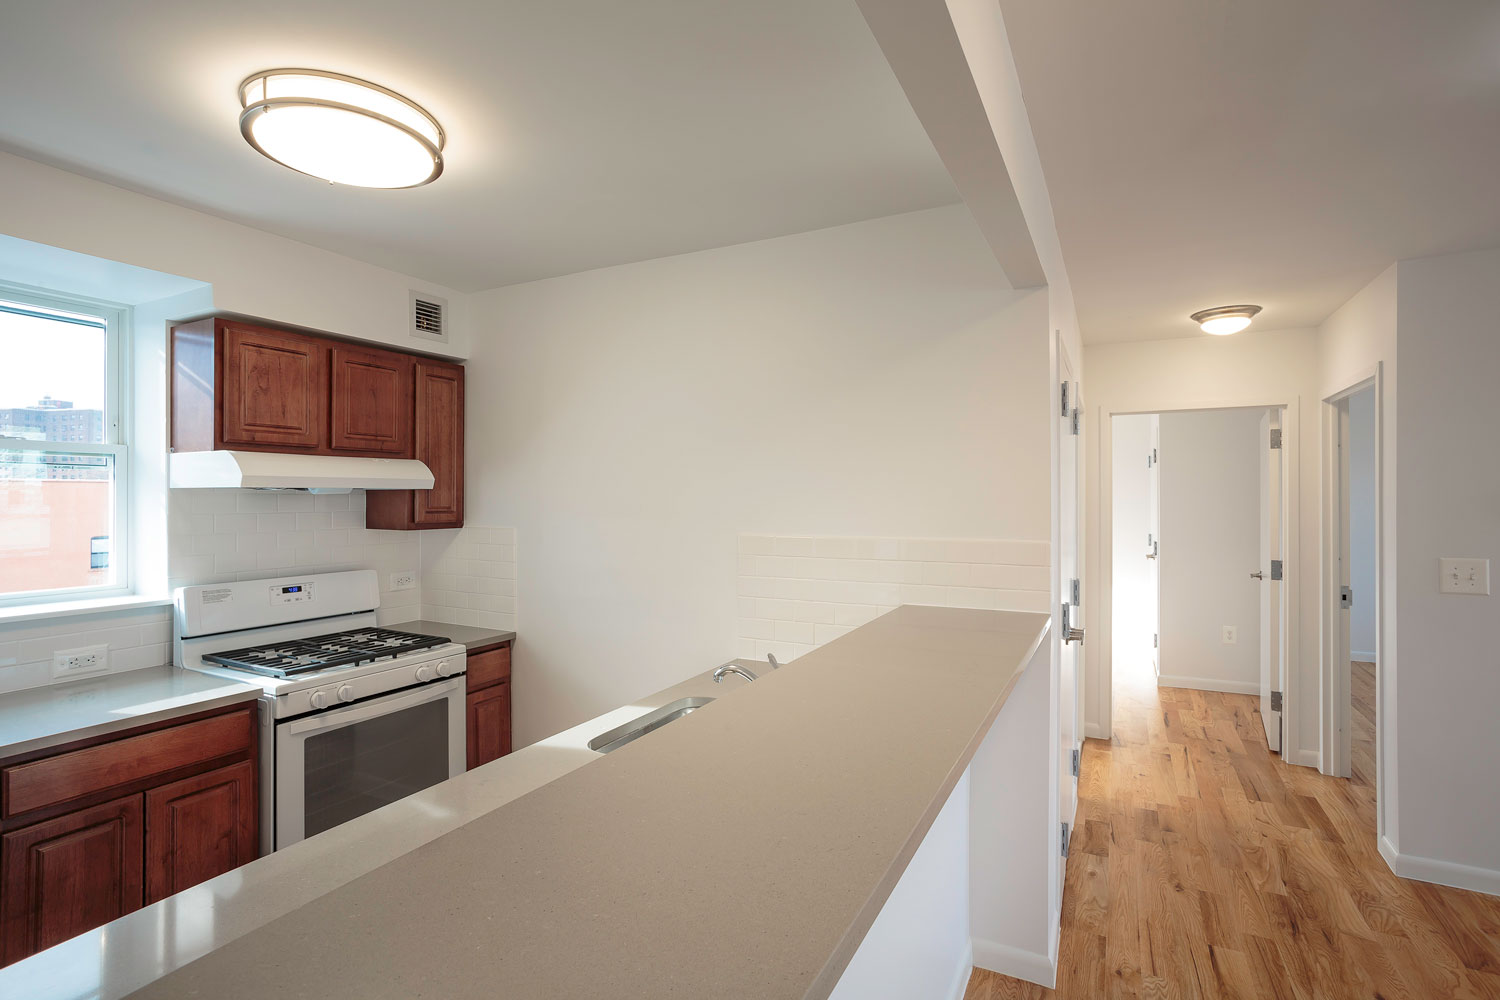 Open kitchens at these green, affordable condos designed by OCV Architects for Habitat for Humanity - NYC.